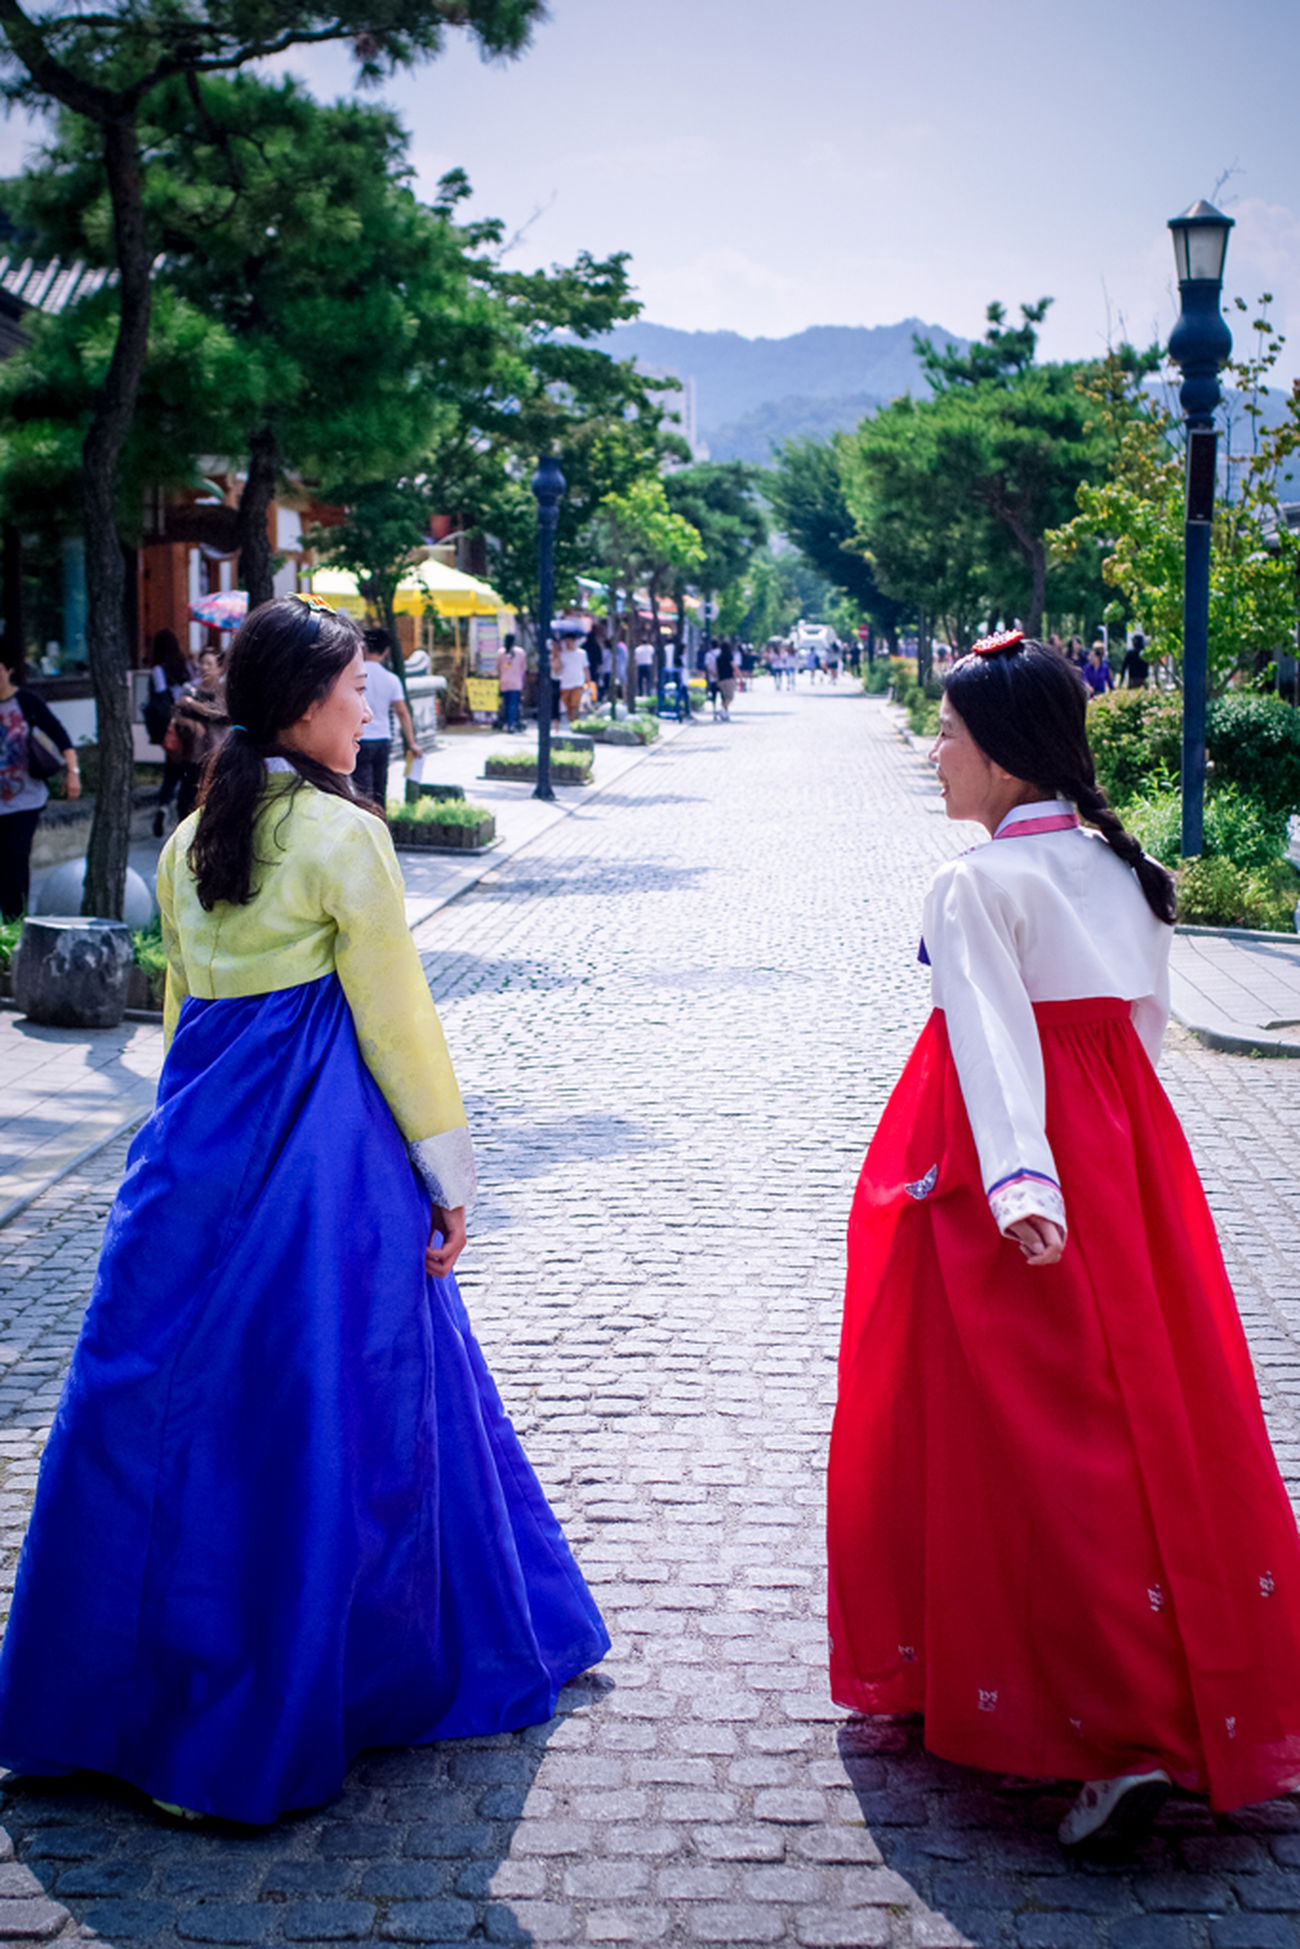 Korea Traditional Village Korea Tradition Korea Traditional Dress Portrait Streetphotography 전주한옥마을 한복 한옥마을